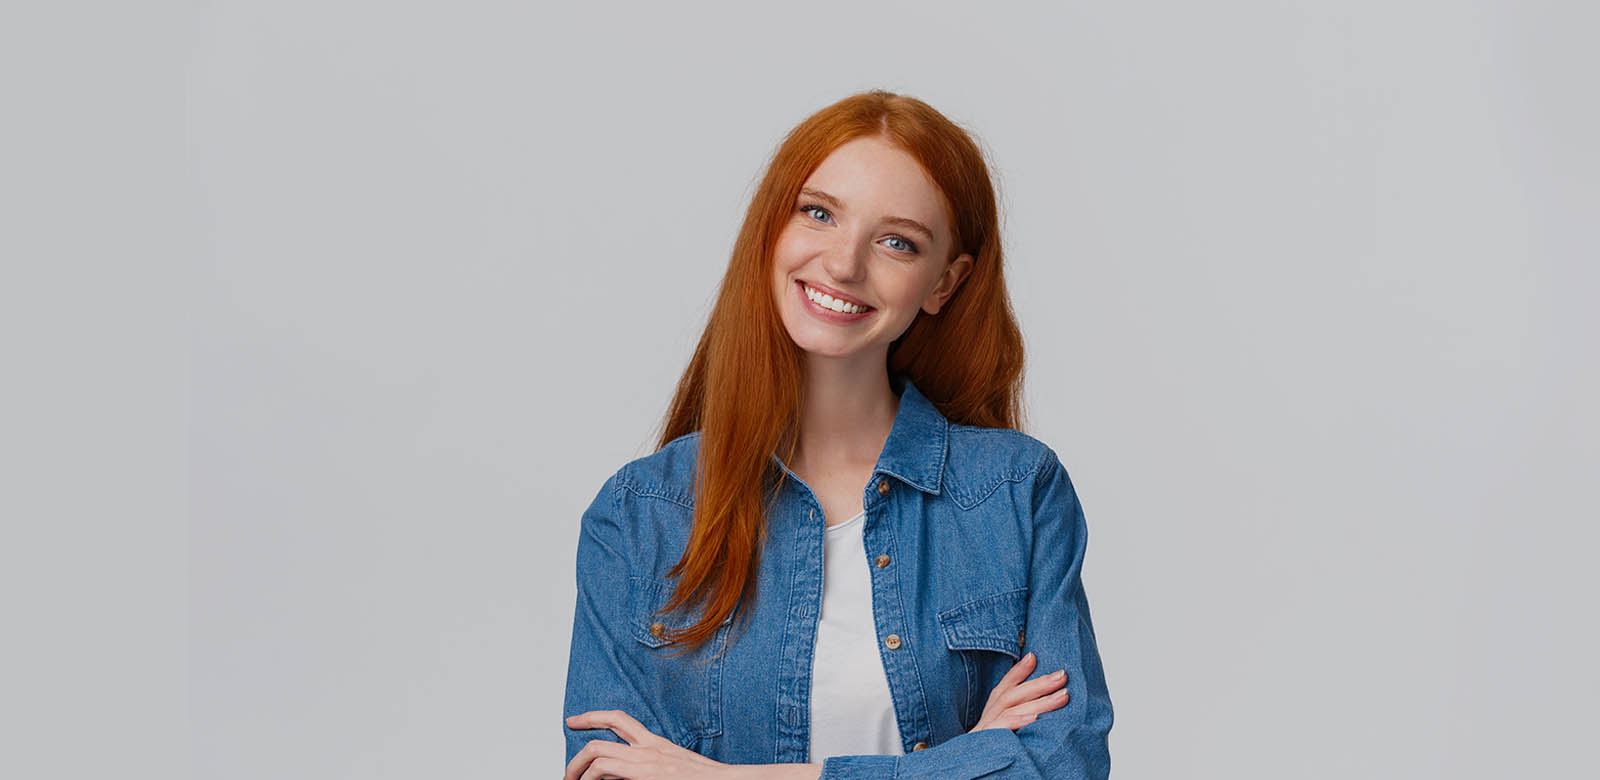 beautiful young woman with orange hair smiling